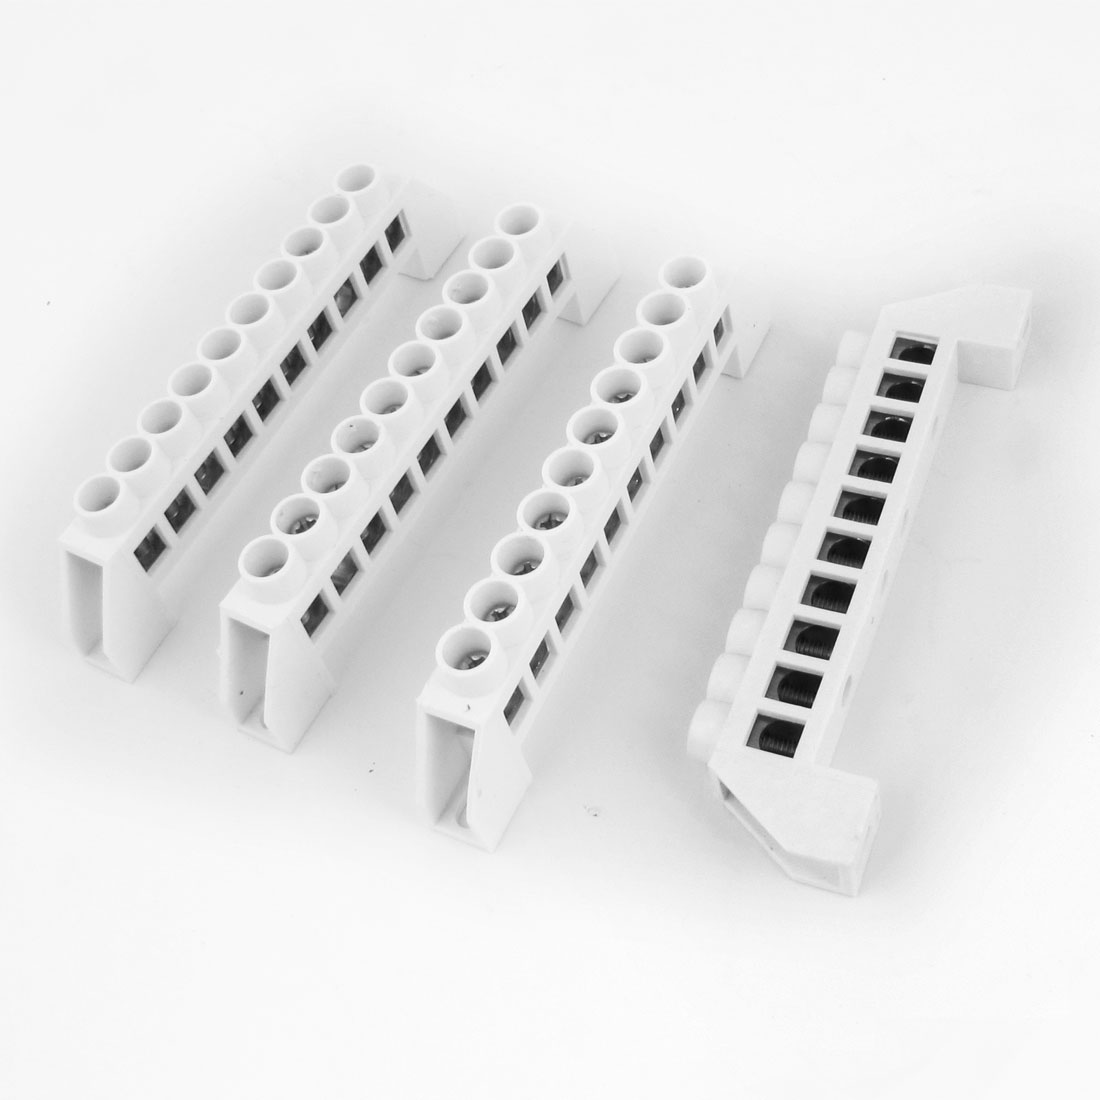 10 Way Bridge Design Copper Tone Terminals Block Connector White 4PCS